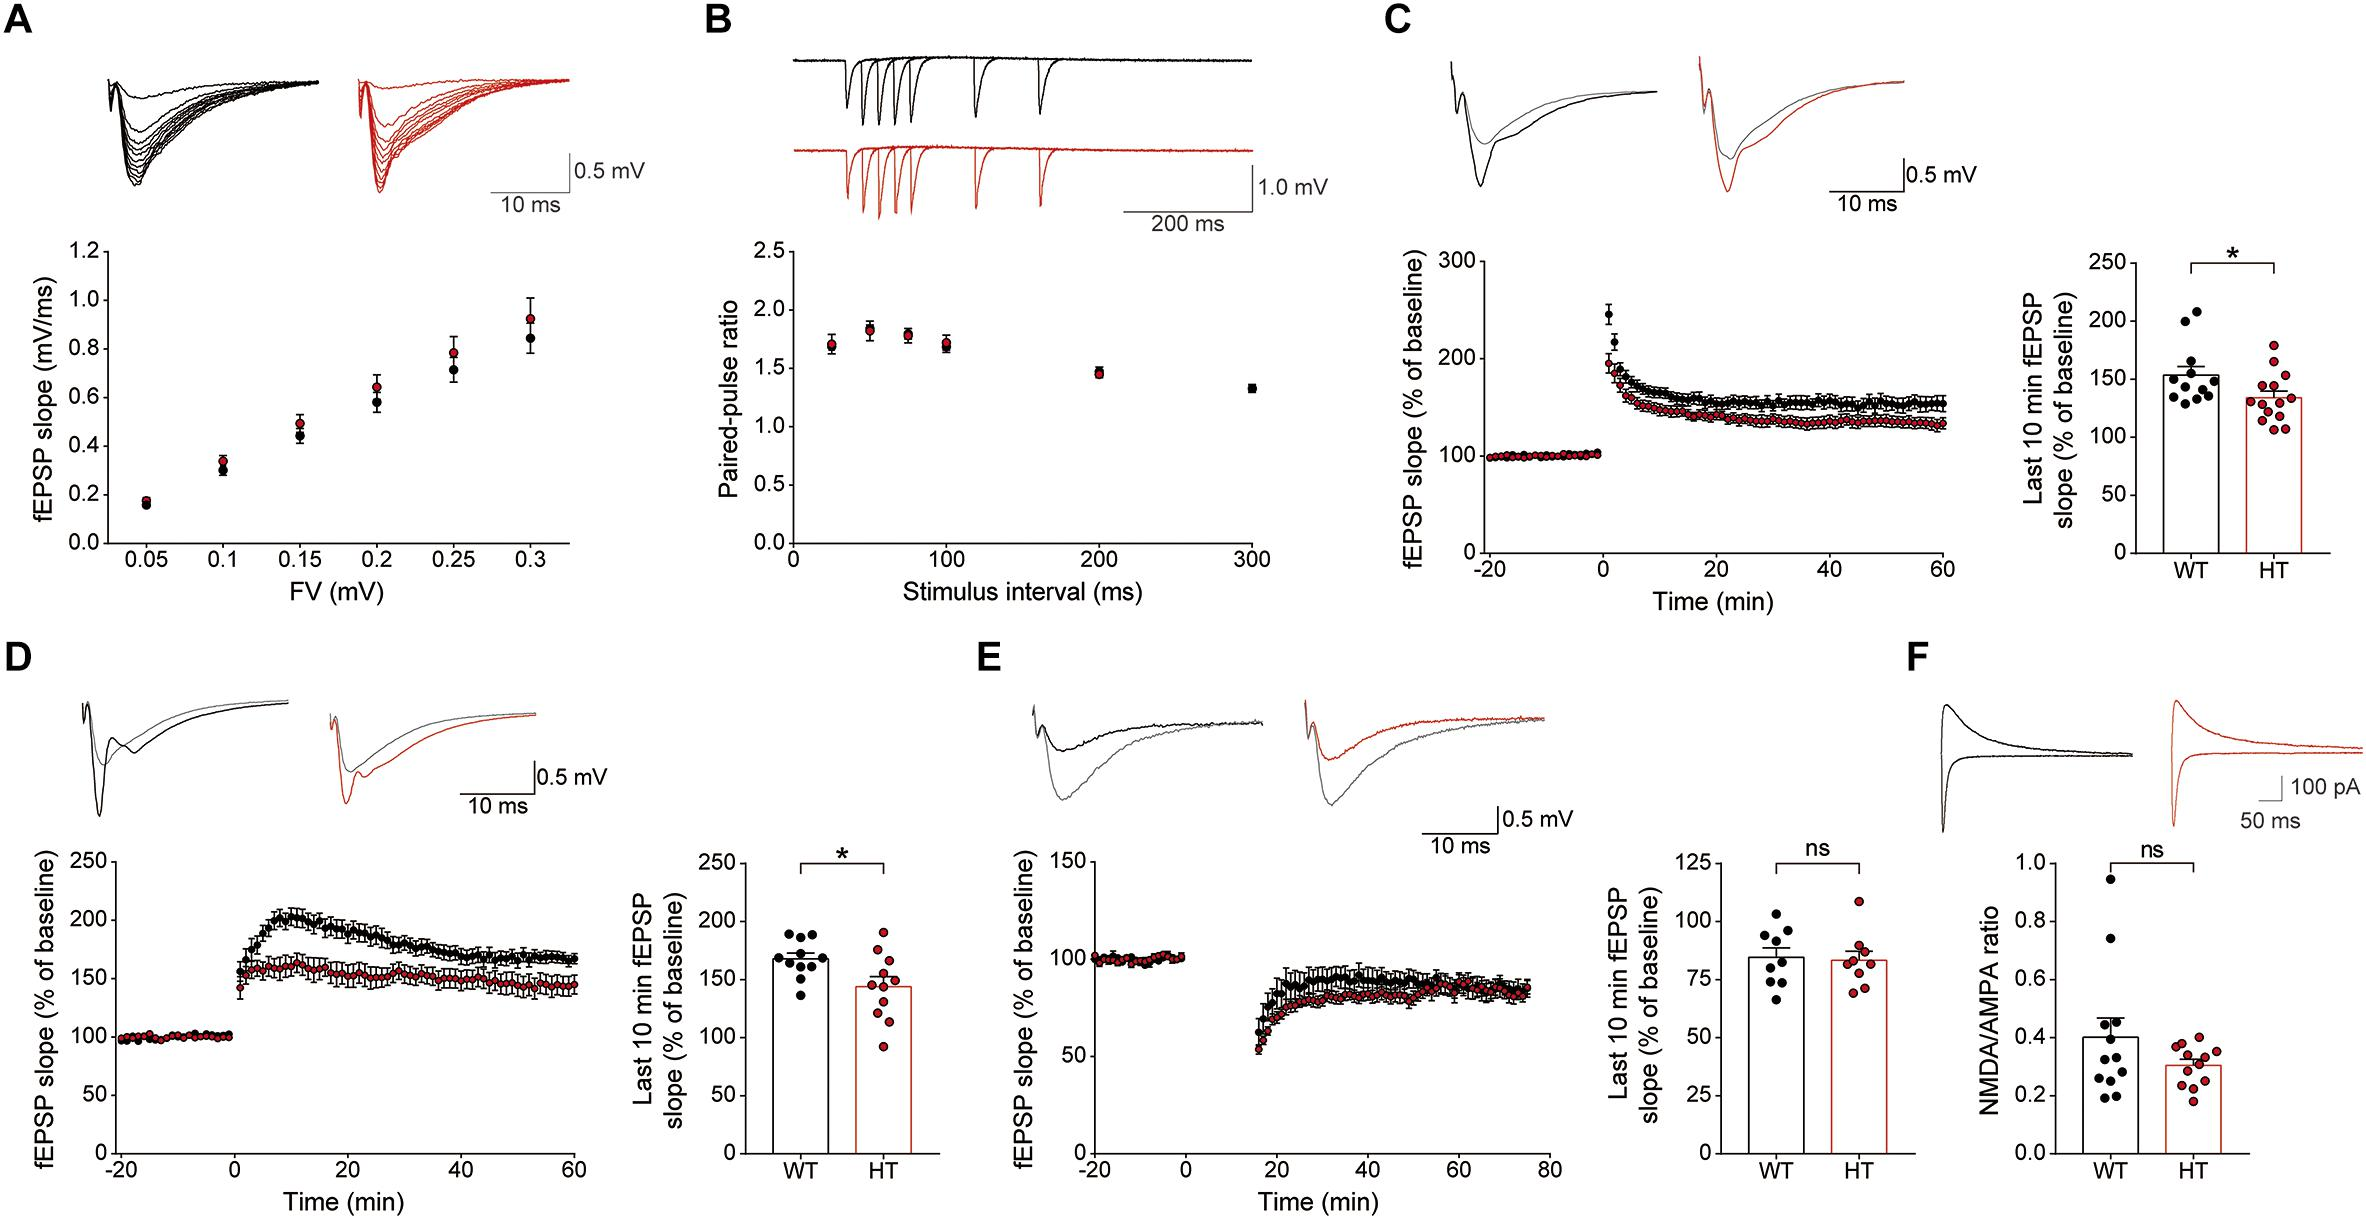 Frontiers | Scn2a Haploinsufficiency in Mice Suppresses Hippocampal